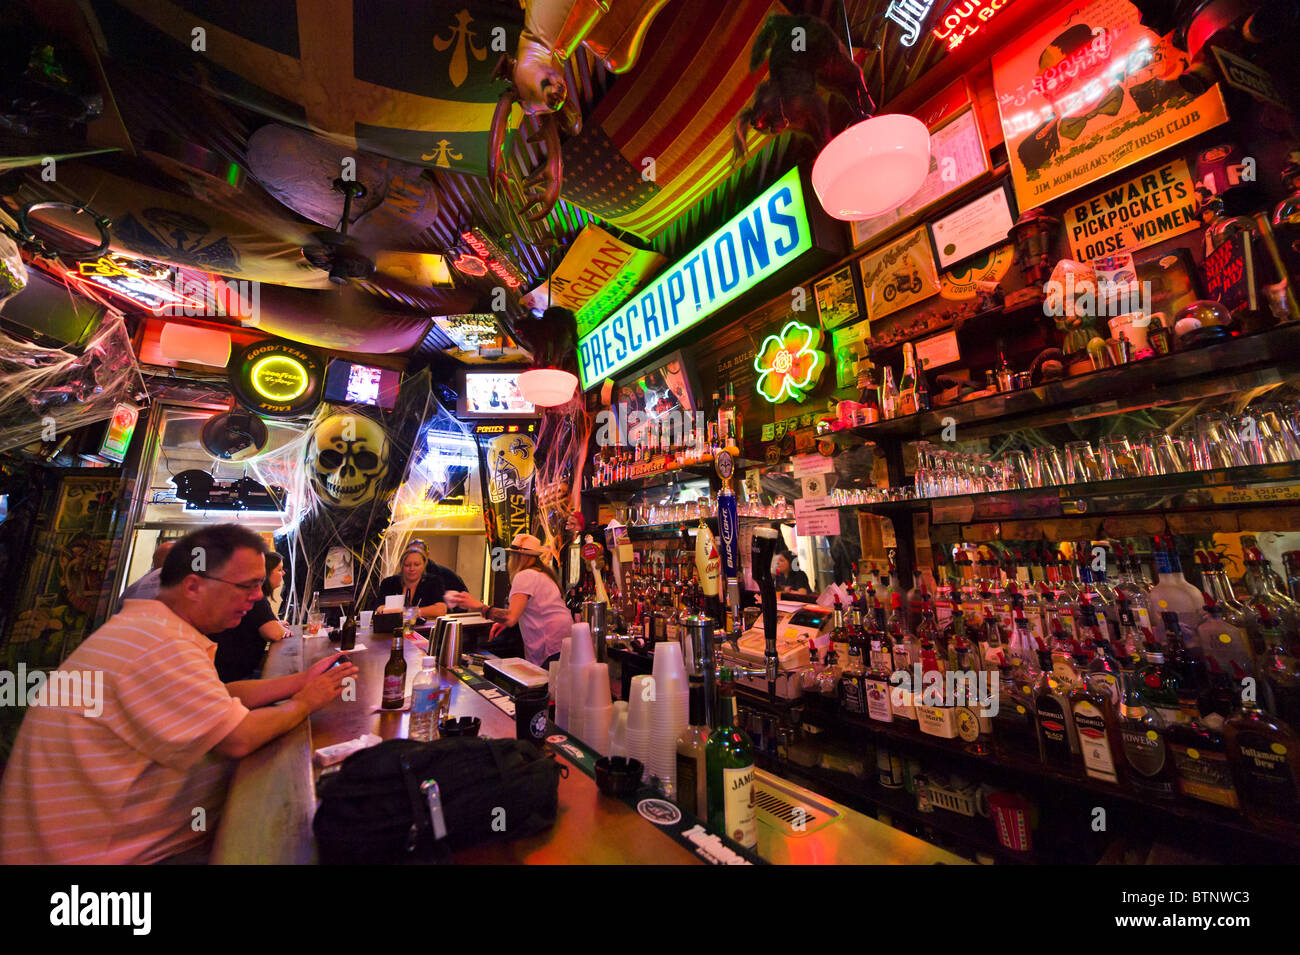 Typical bar at night, French Quarter, New Orleans, Lousiana, USA - Stock Image